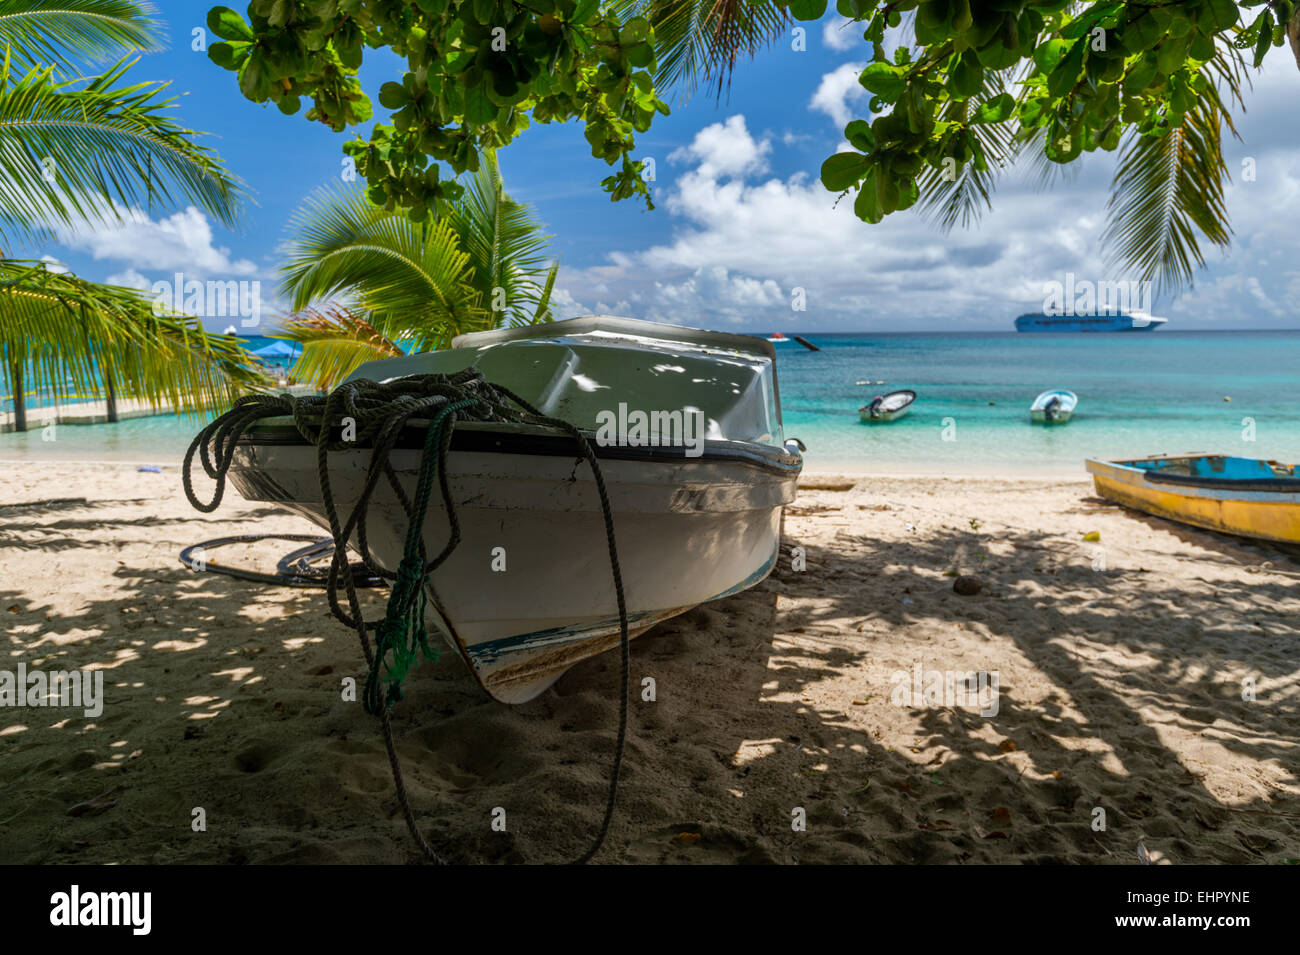 A boat tied up on Dravuni Island which is part of Fiji located in the south pacific. - Stock Image